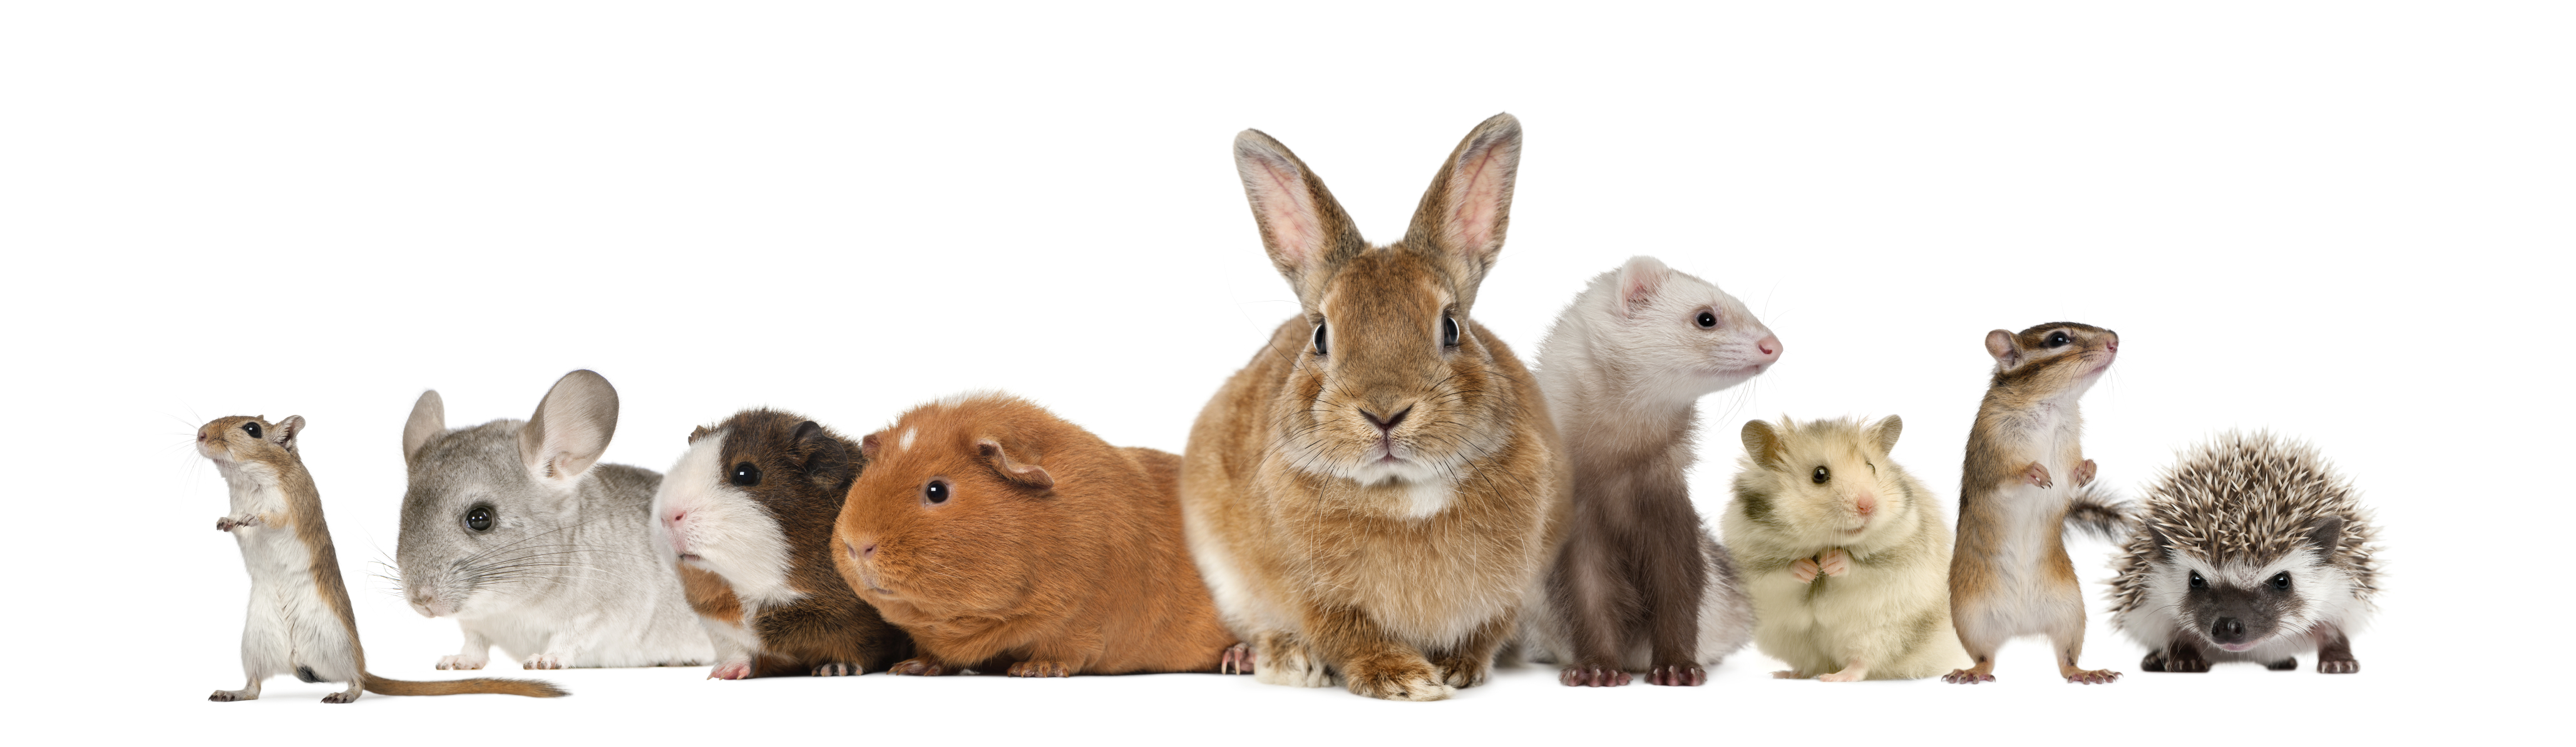 rabbit_in_group_of_small_animals.jpg